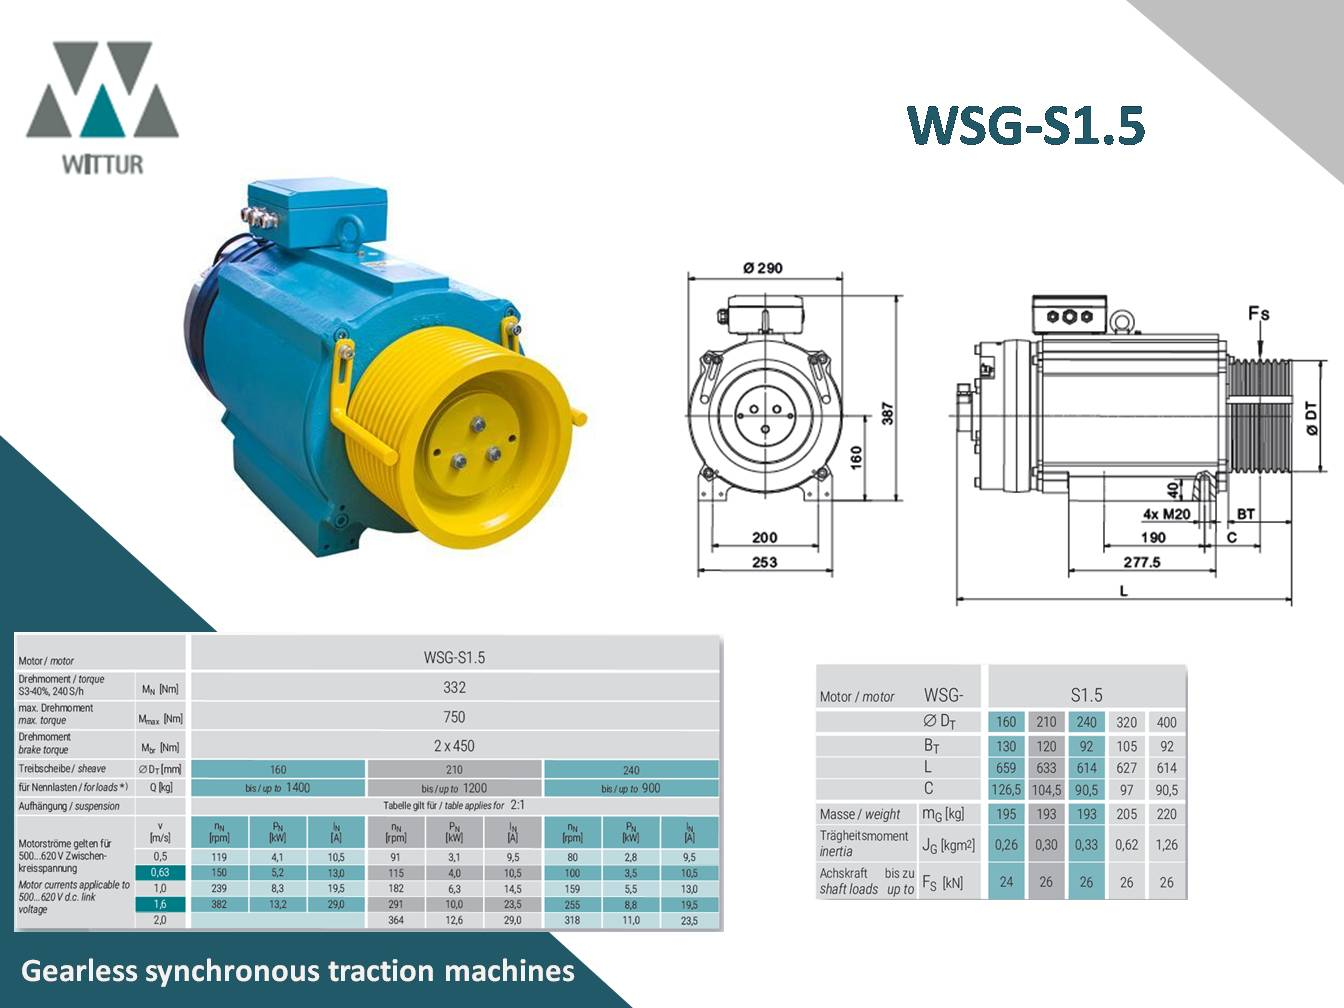 http://aasansor.ir/images/product/3_type_of_parts/1_motor/2_gearboxless/1_germany/witur/Slide2.jpg